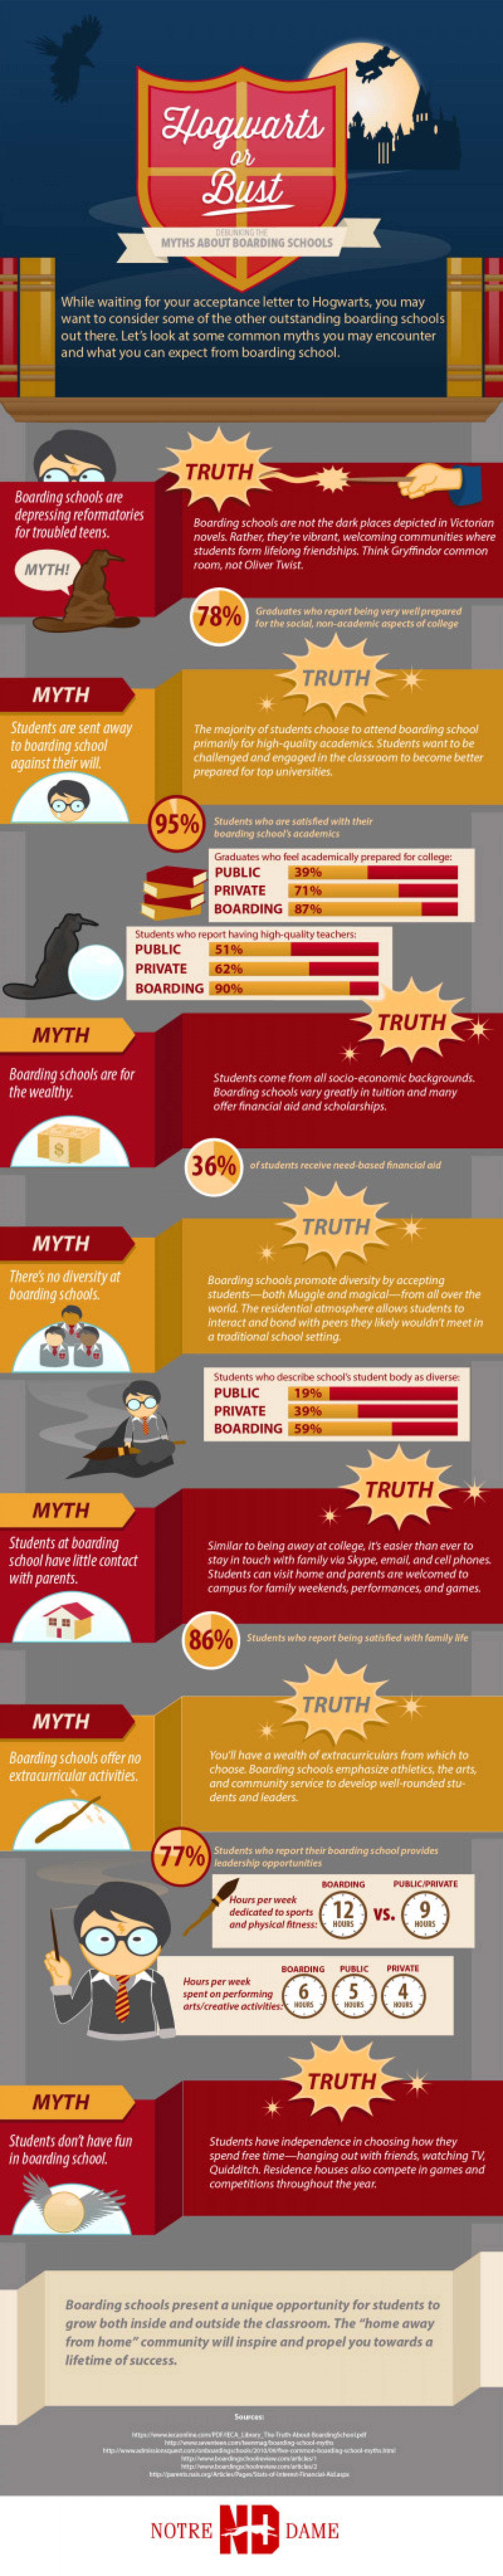 Hogwarts or Bust! Boarding School Myths - Debunked Infographic